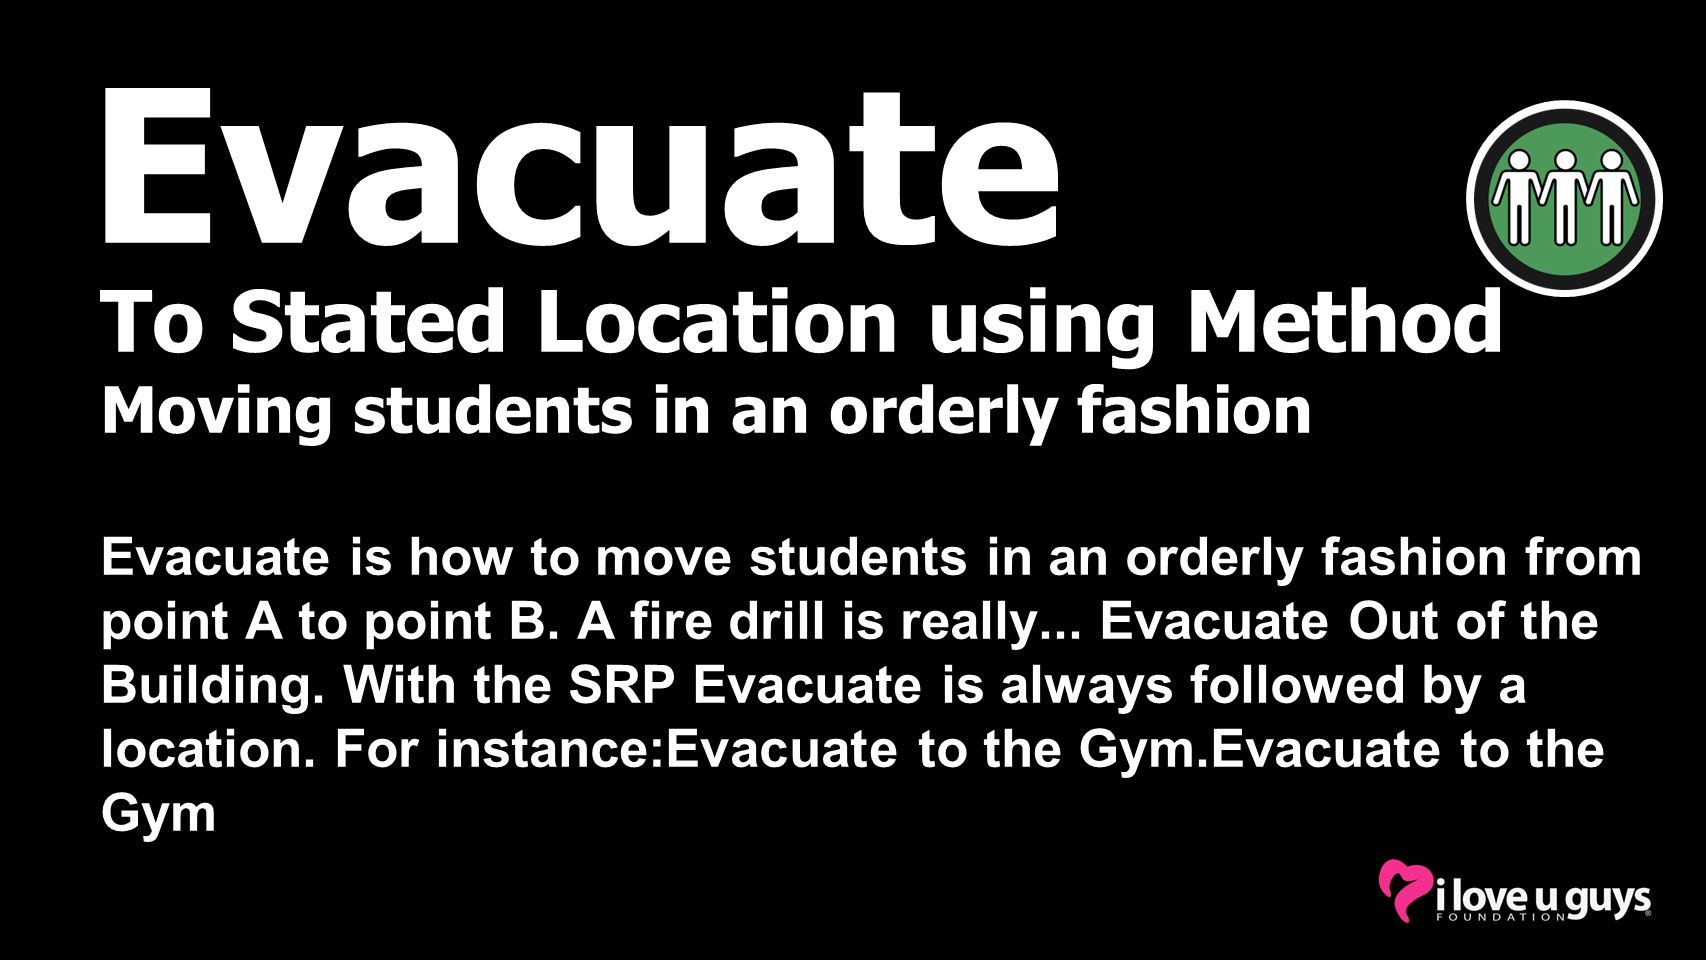 Evacuate To Stated Location using Method